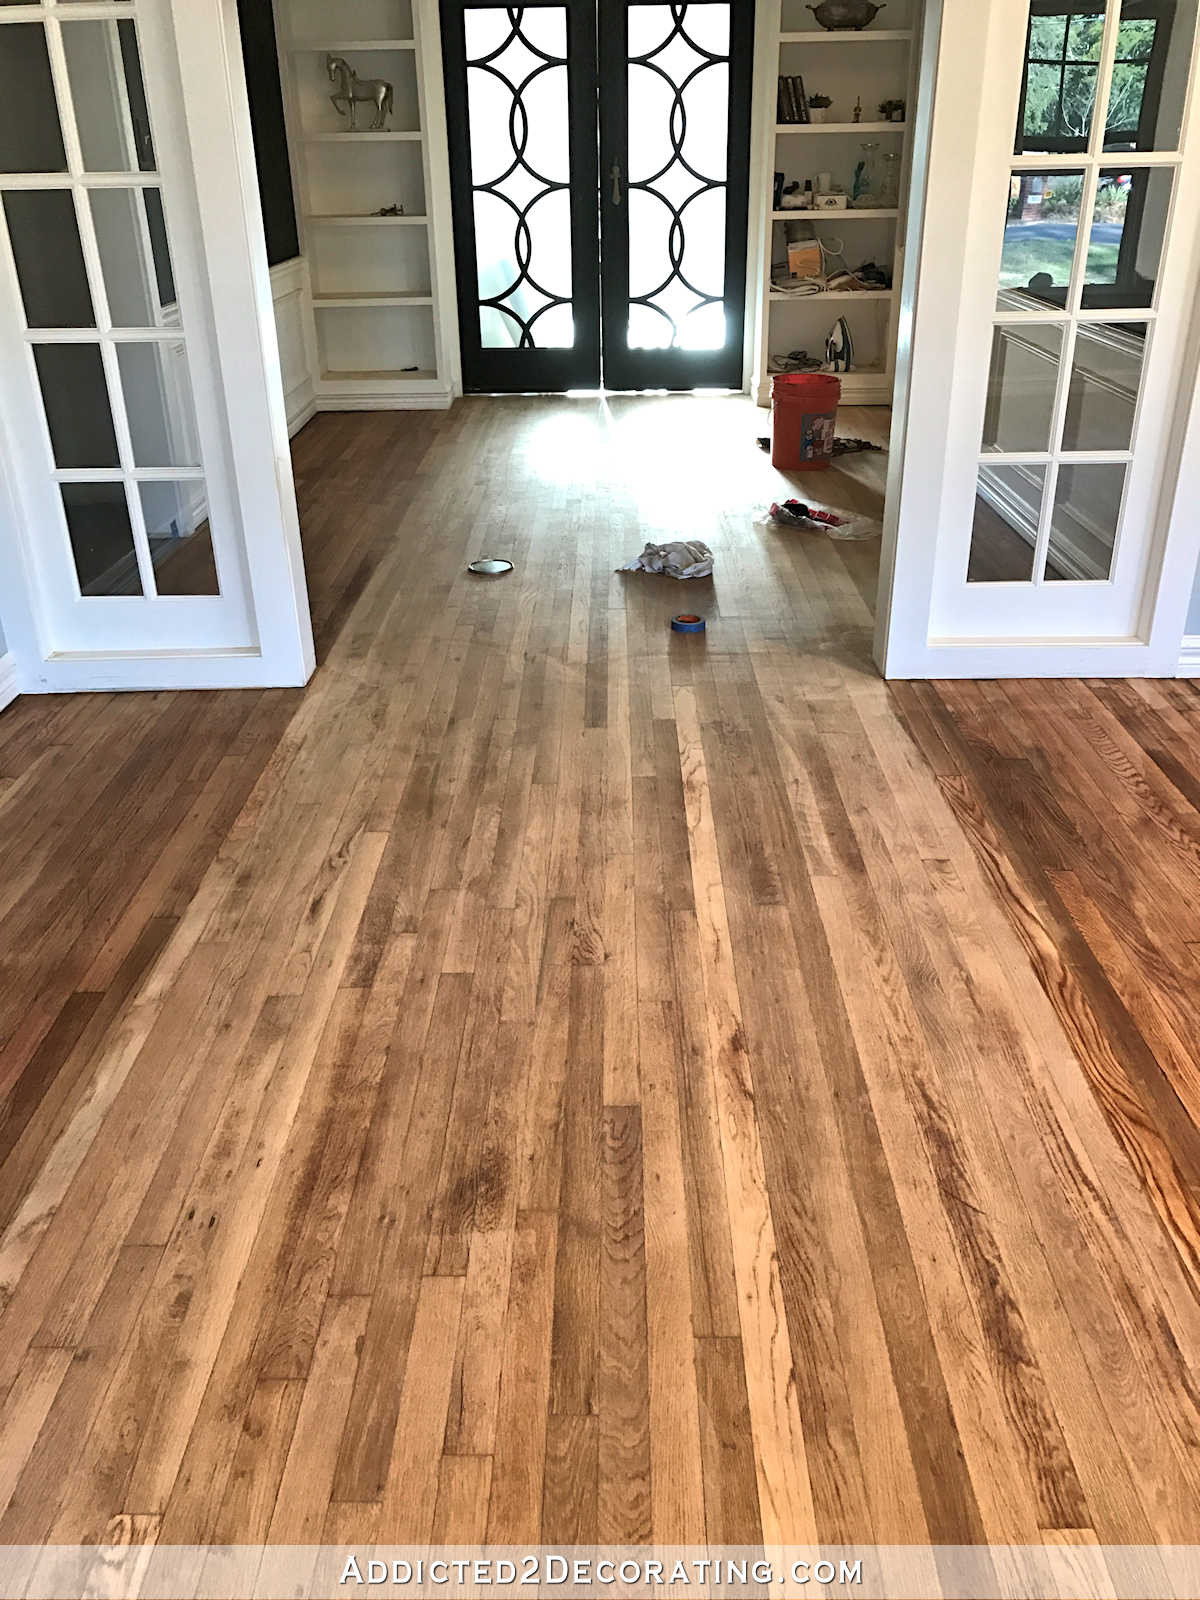 dark vs light colored hardwood floors of adventures in staining my red oak hardwood floors products process for staining red oak hardwood floors 5 music room wood conditioner